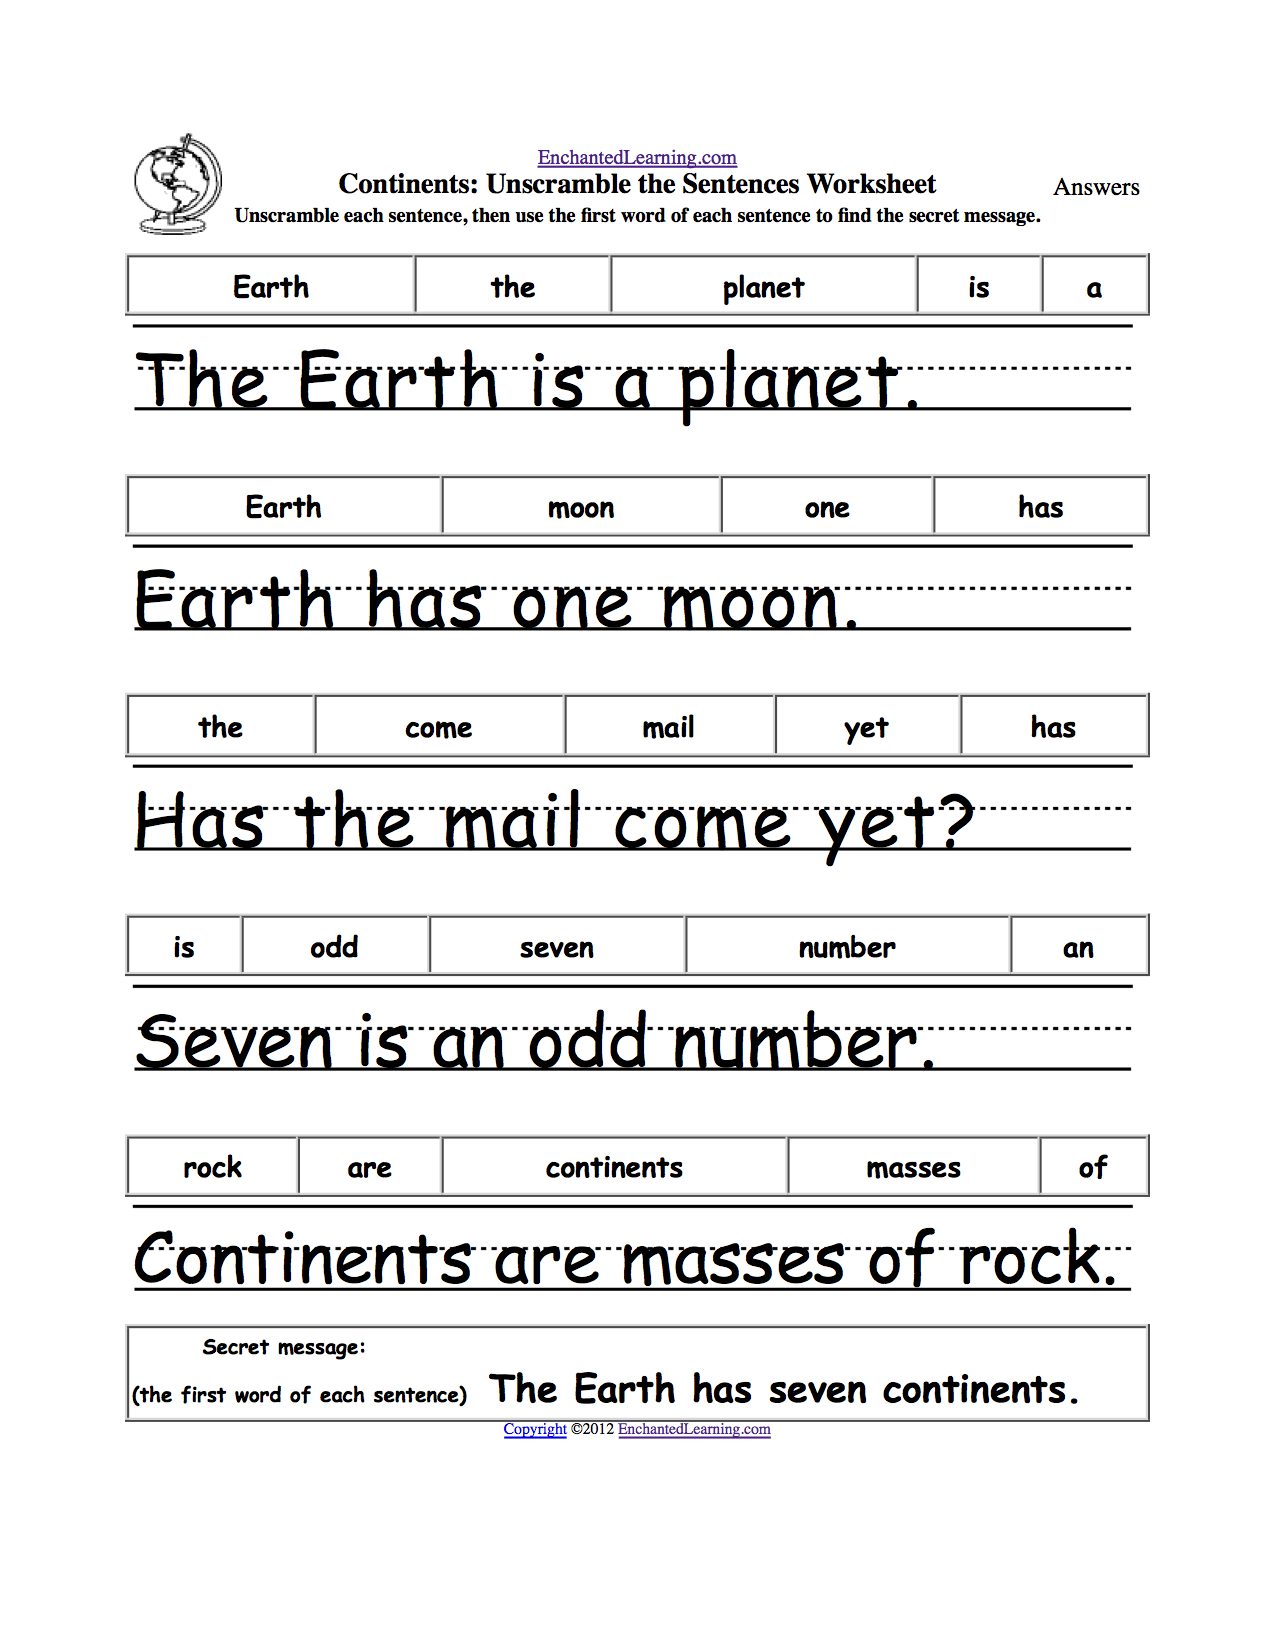 Worksheet Sentence Verb parts of speech enchantedlearning com unscramble the sentences